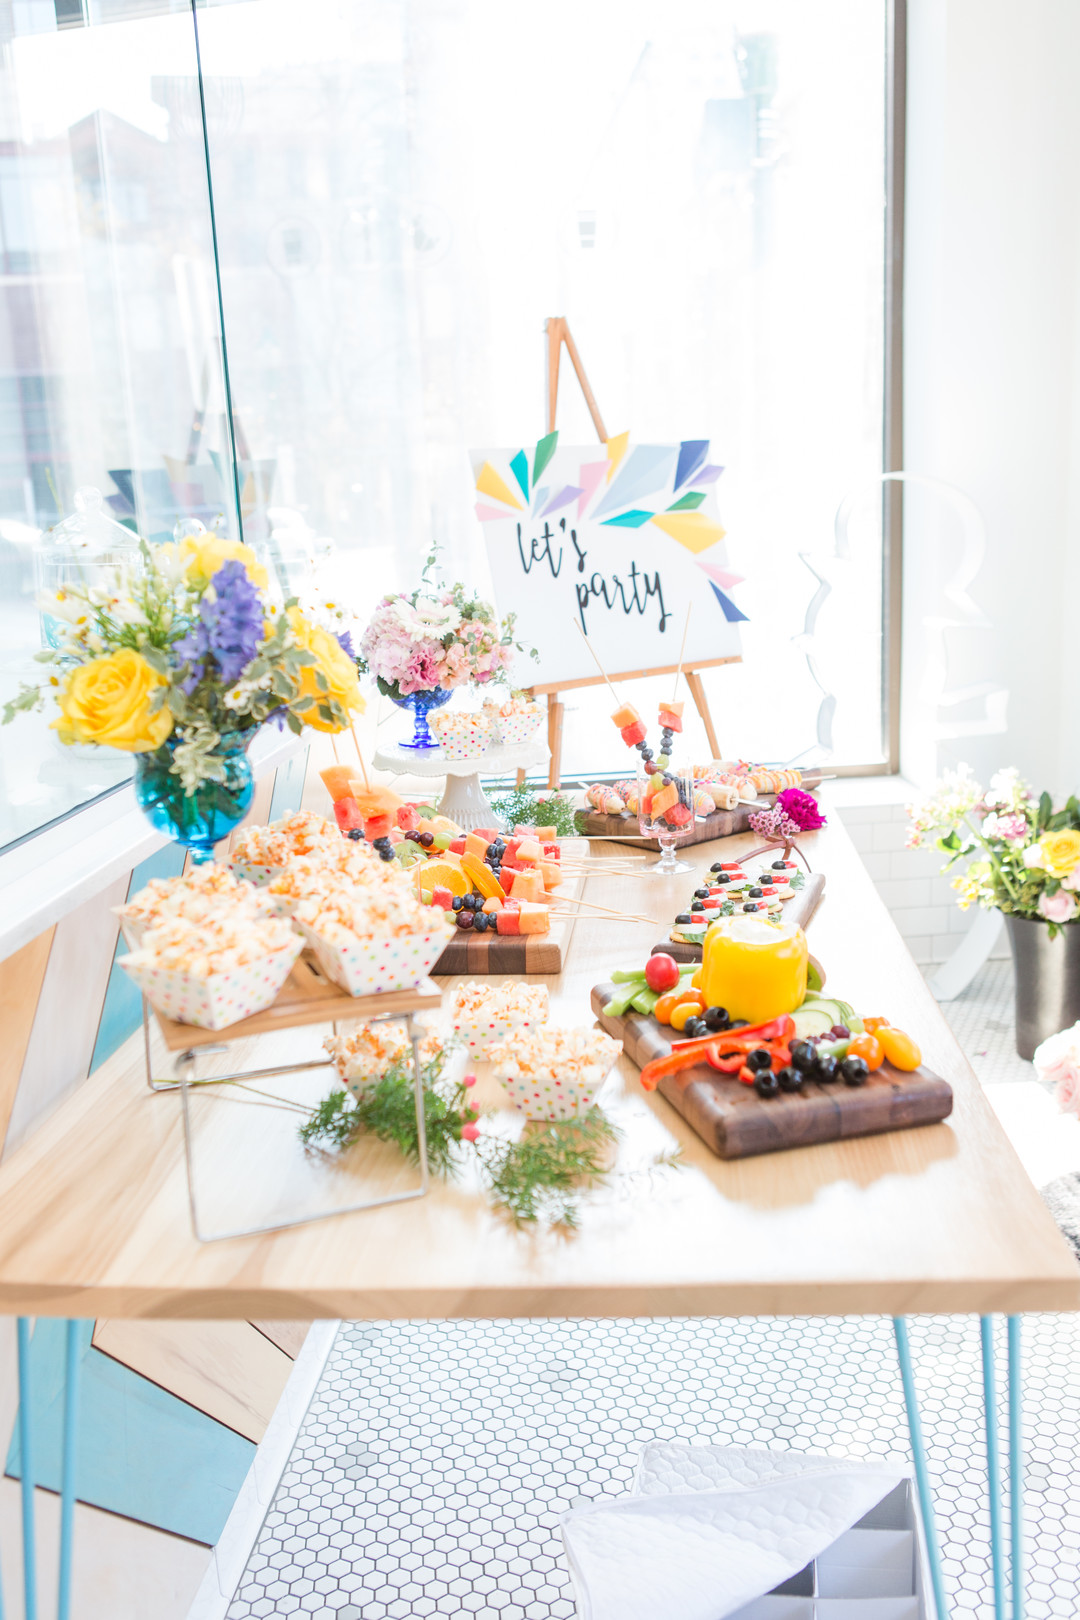 Creative ideas and inspiration for a modern geometric spring birthday party for girls! This colorful kids party full of bright decor, cake and flowers is the perfect theme for fun! #geometric #birthday #springparty #kidsparty